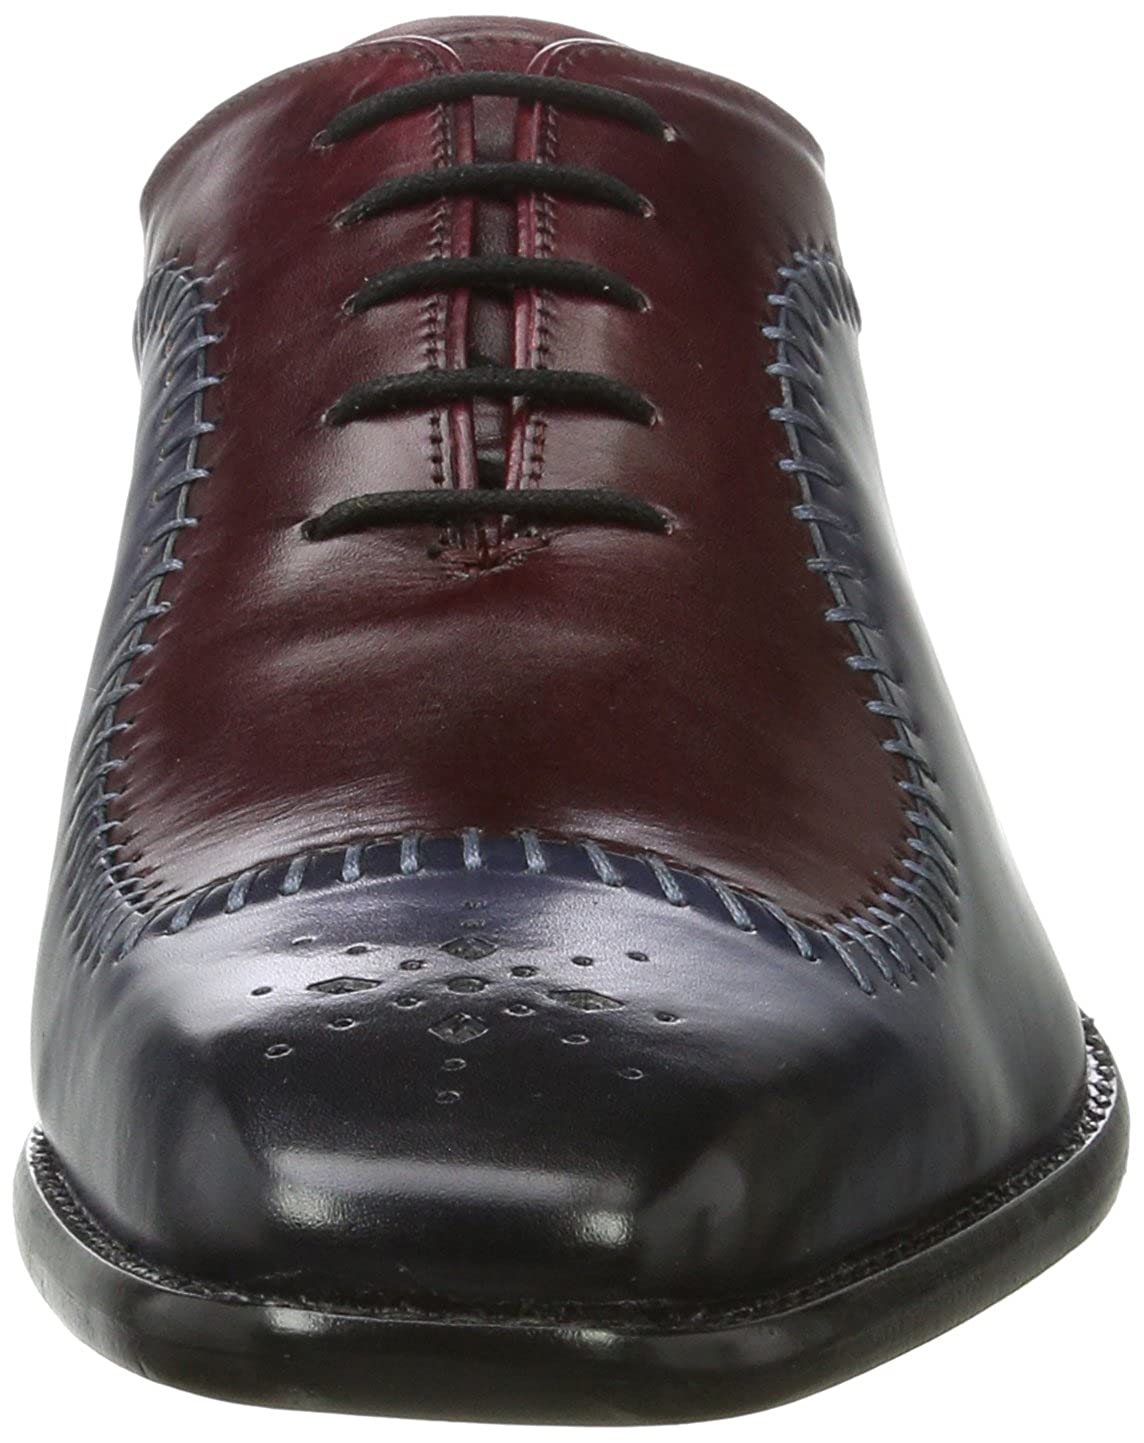 MELVIN & HAMILTON MH HAND MADE Schuhe OF Oxfords CLASS Herren Clark 2 Oxfords OF Blau (Crust Navy (1), Burgundy (2), Ls Blk) ab2271